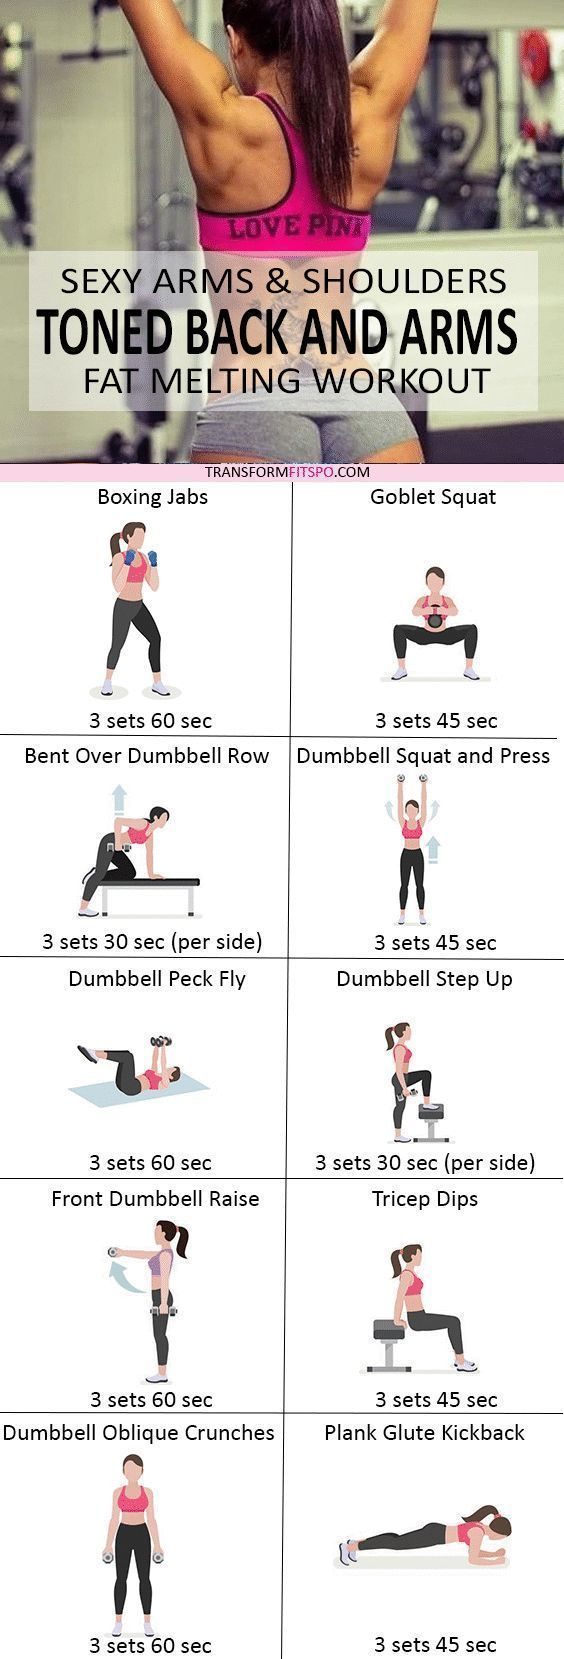 Repin and share if this tightened your arms and made you feel sexy! Read the post for the full workout!